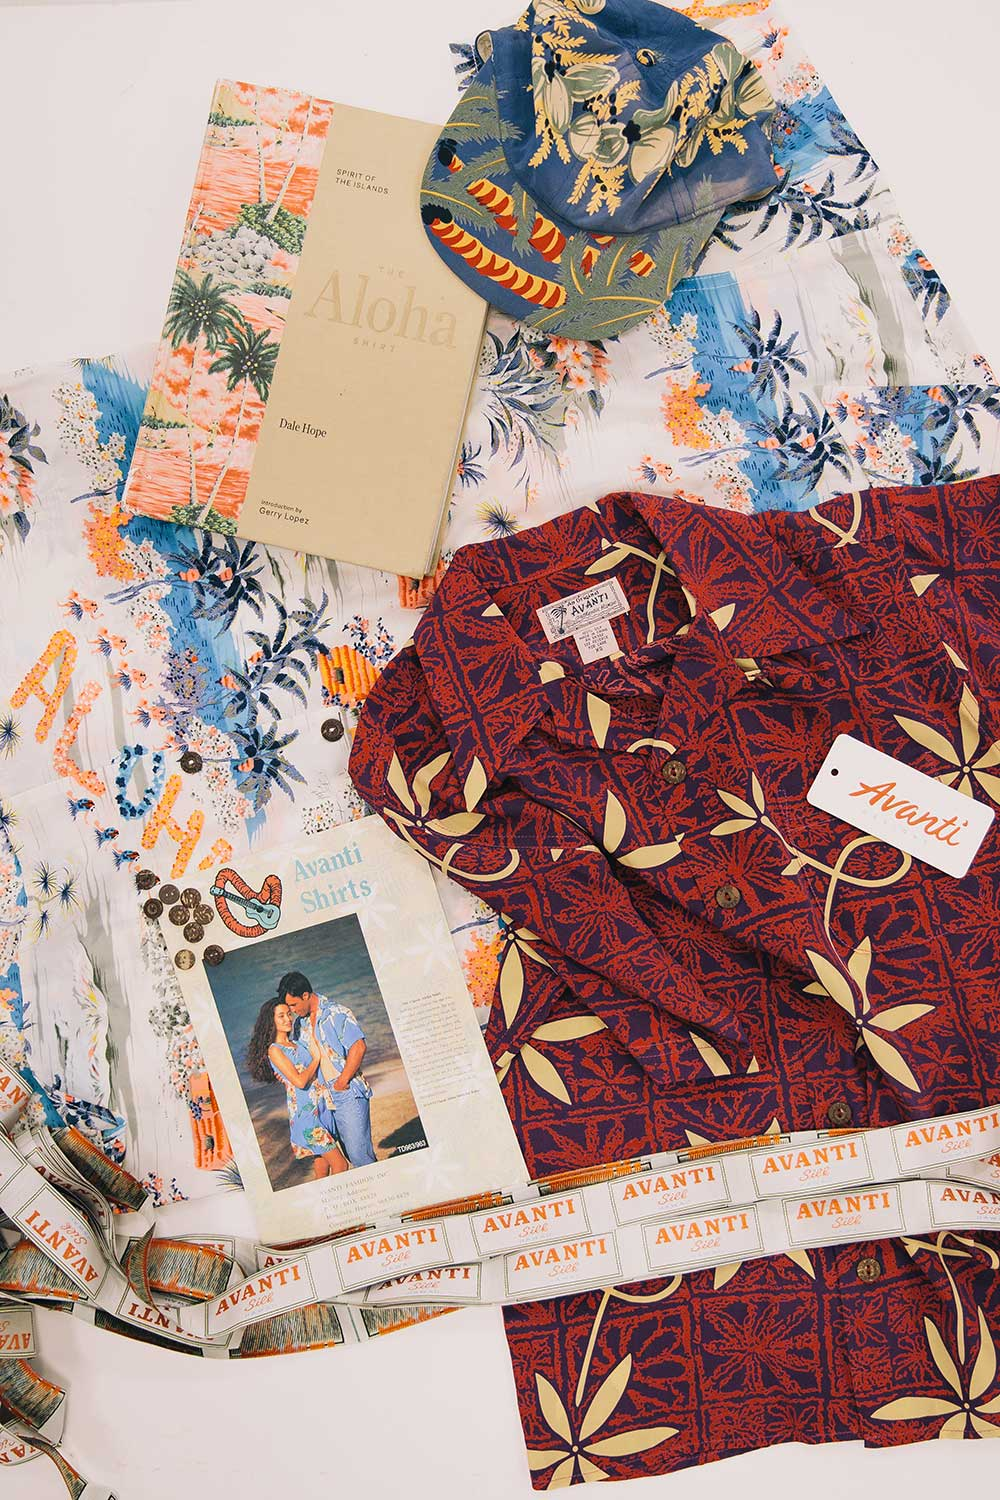 Assortment of aloha shirts by Avanti Designs.